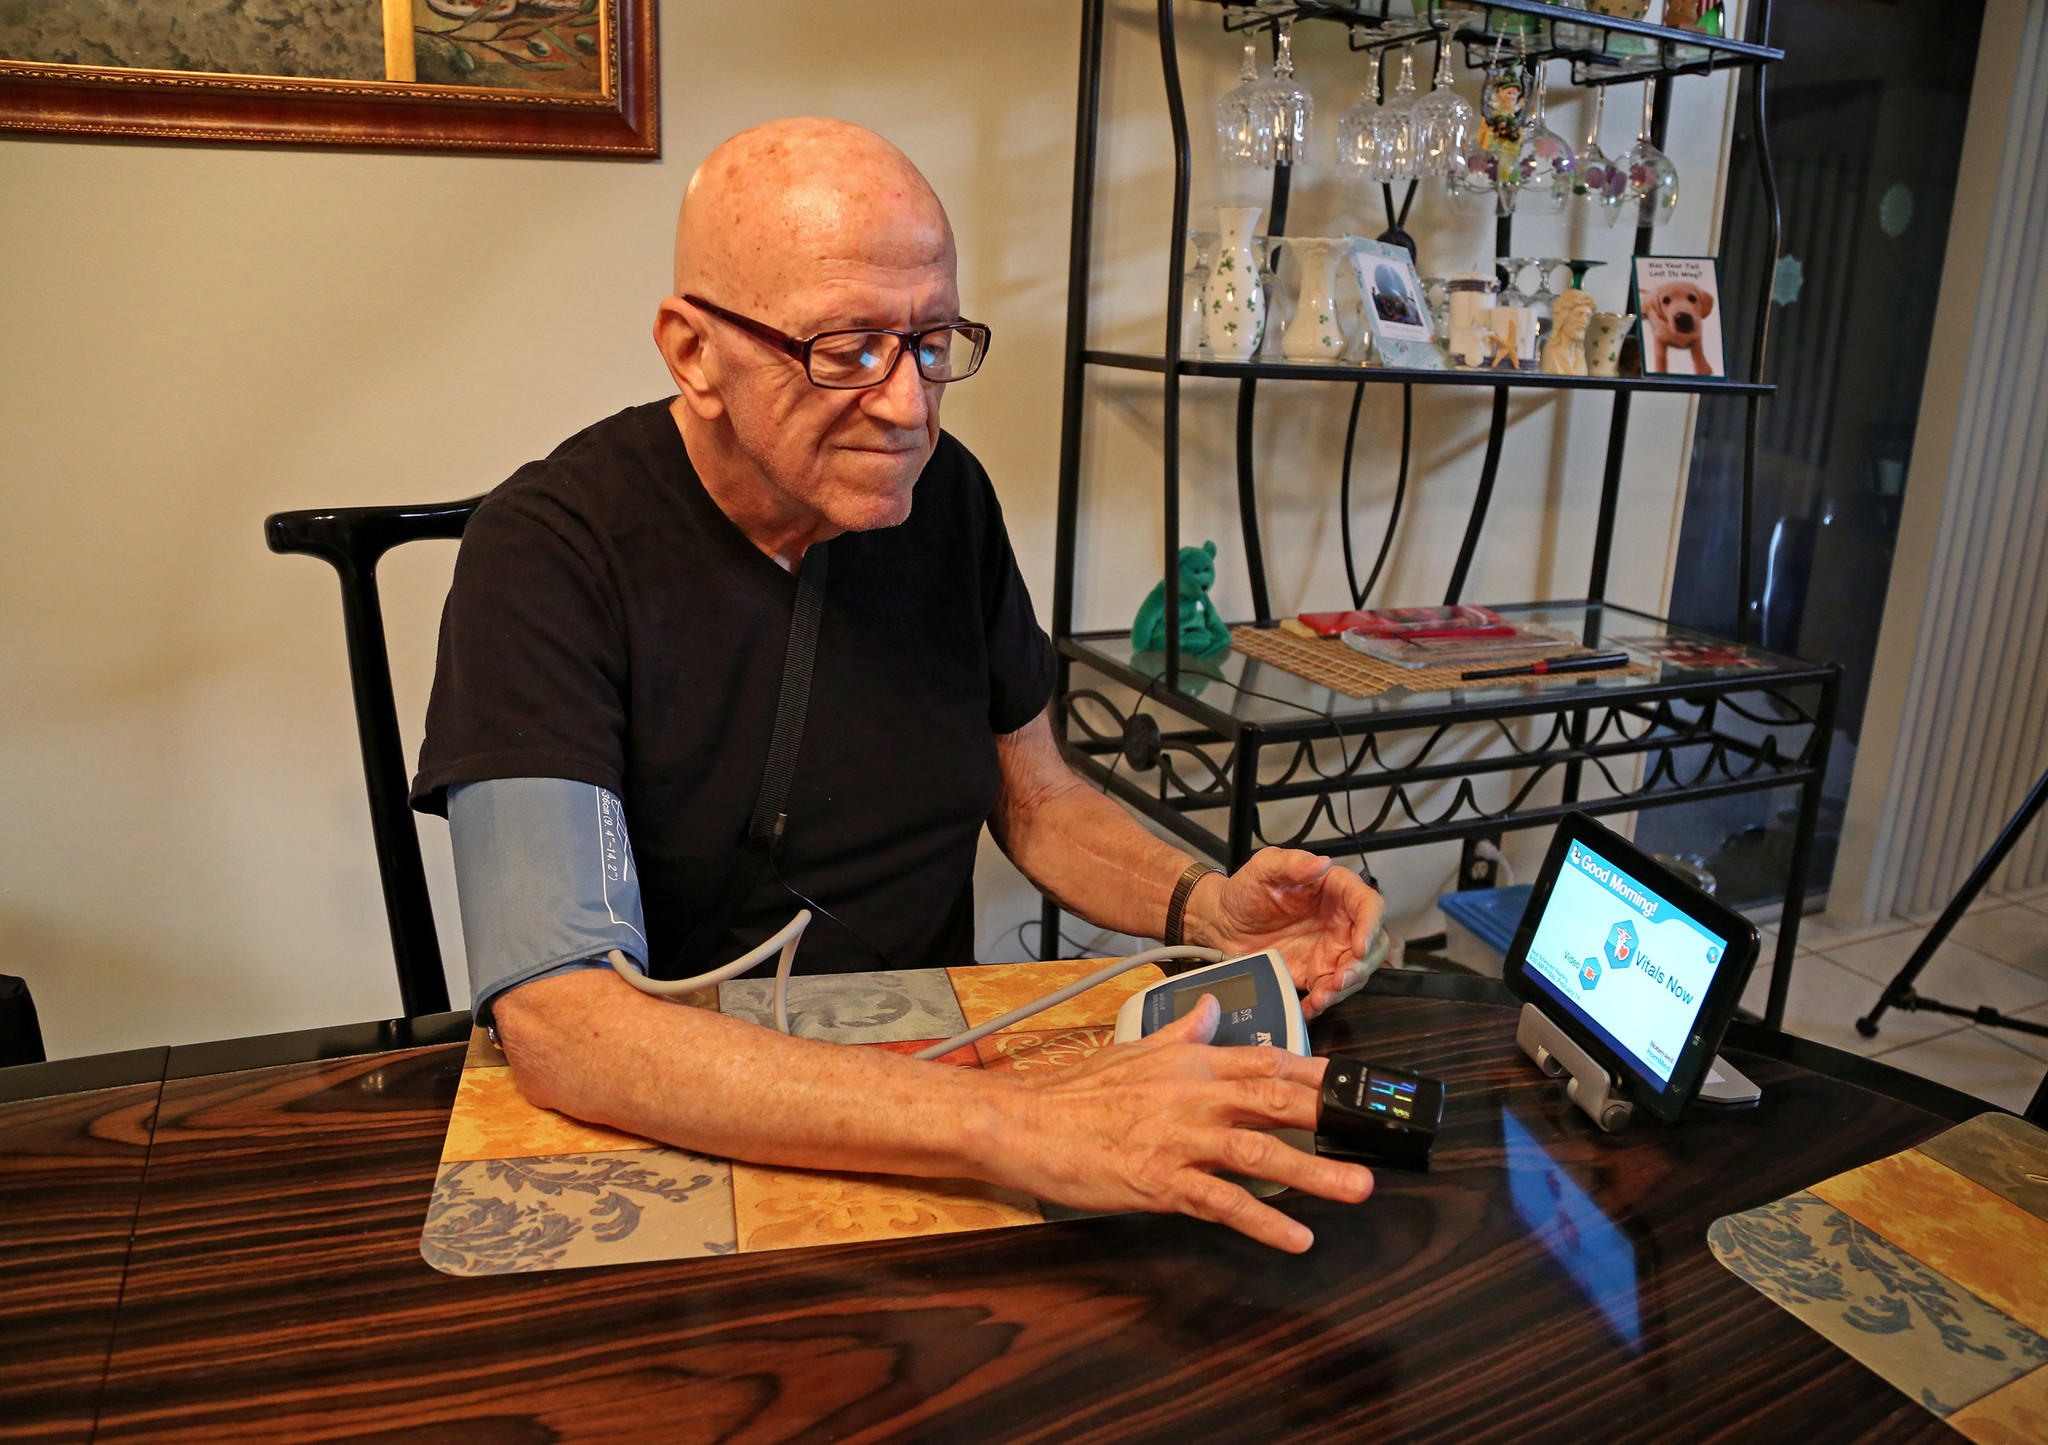 Ralph DeLuca, 72, a recovering heart attack patient, is monitored continuously through Memorial Regional's Home Health Services program. He uses a computer tablet at home hooked up to diagnostic equipment, which sends vital sign results directly to his doctor. (Susan Stocker/Sun Sentinel)